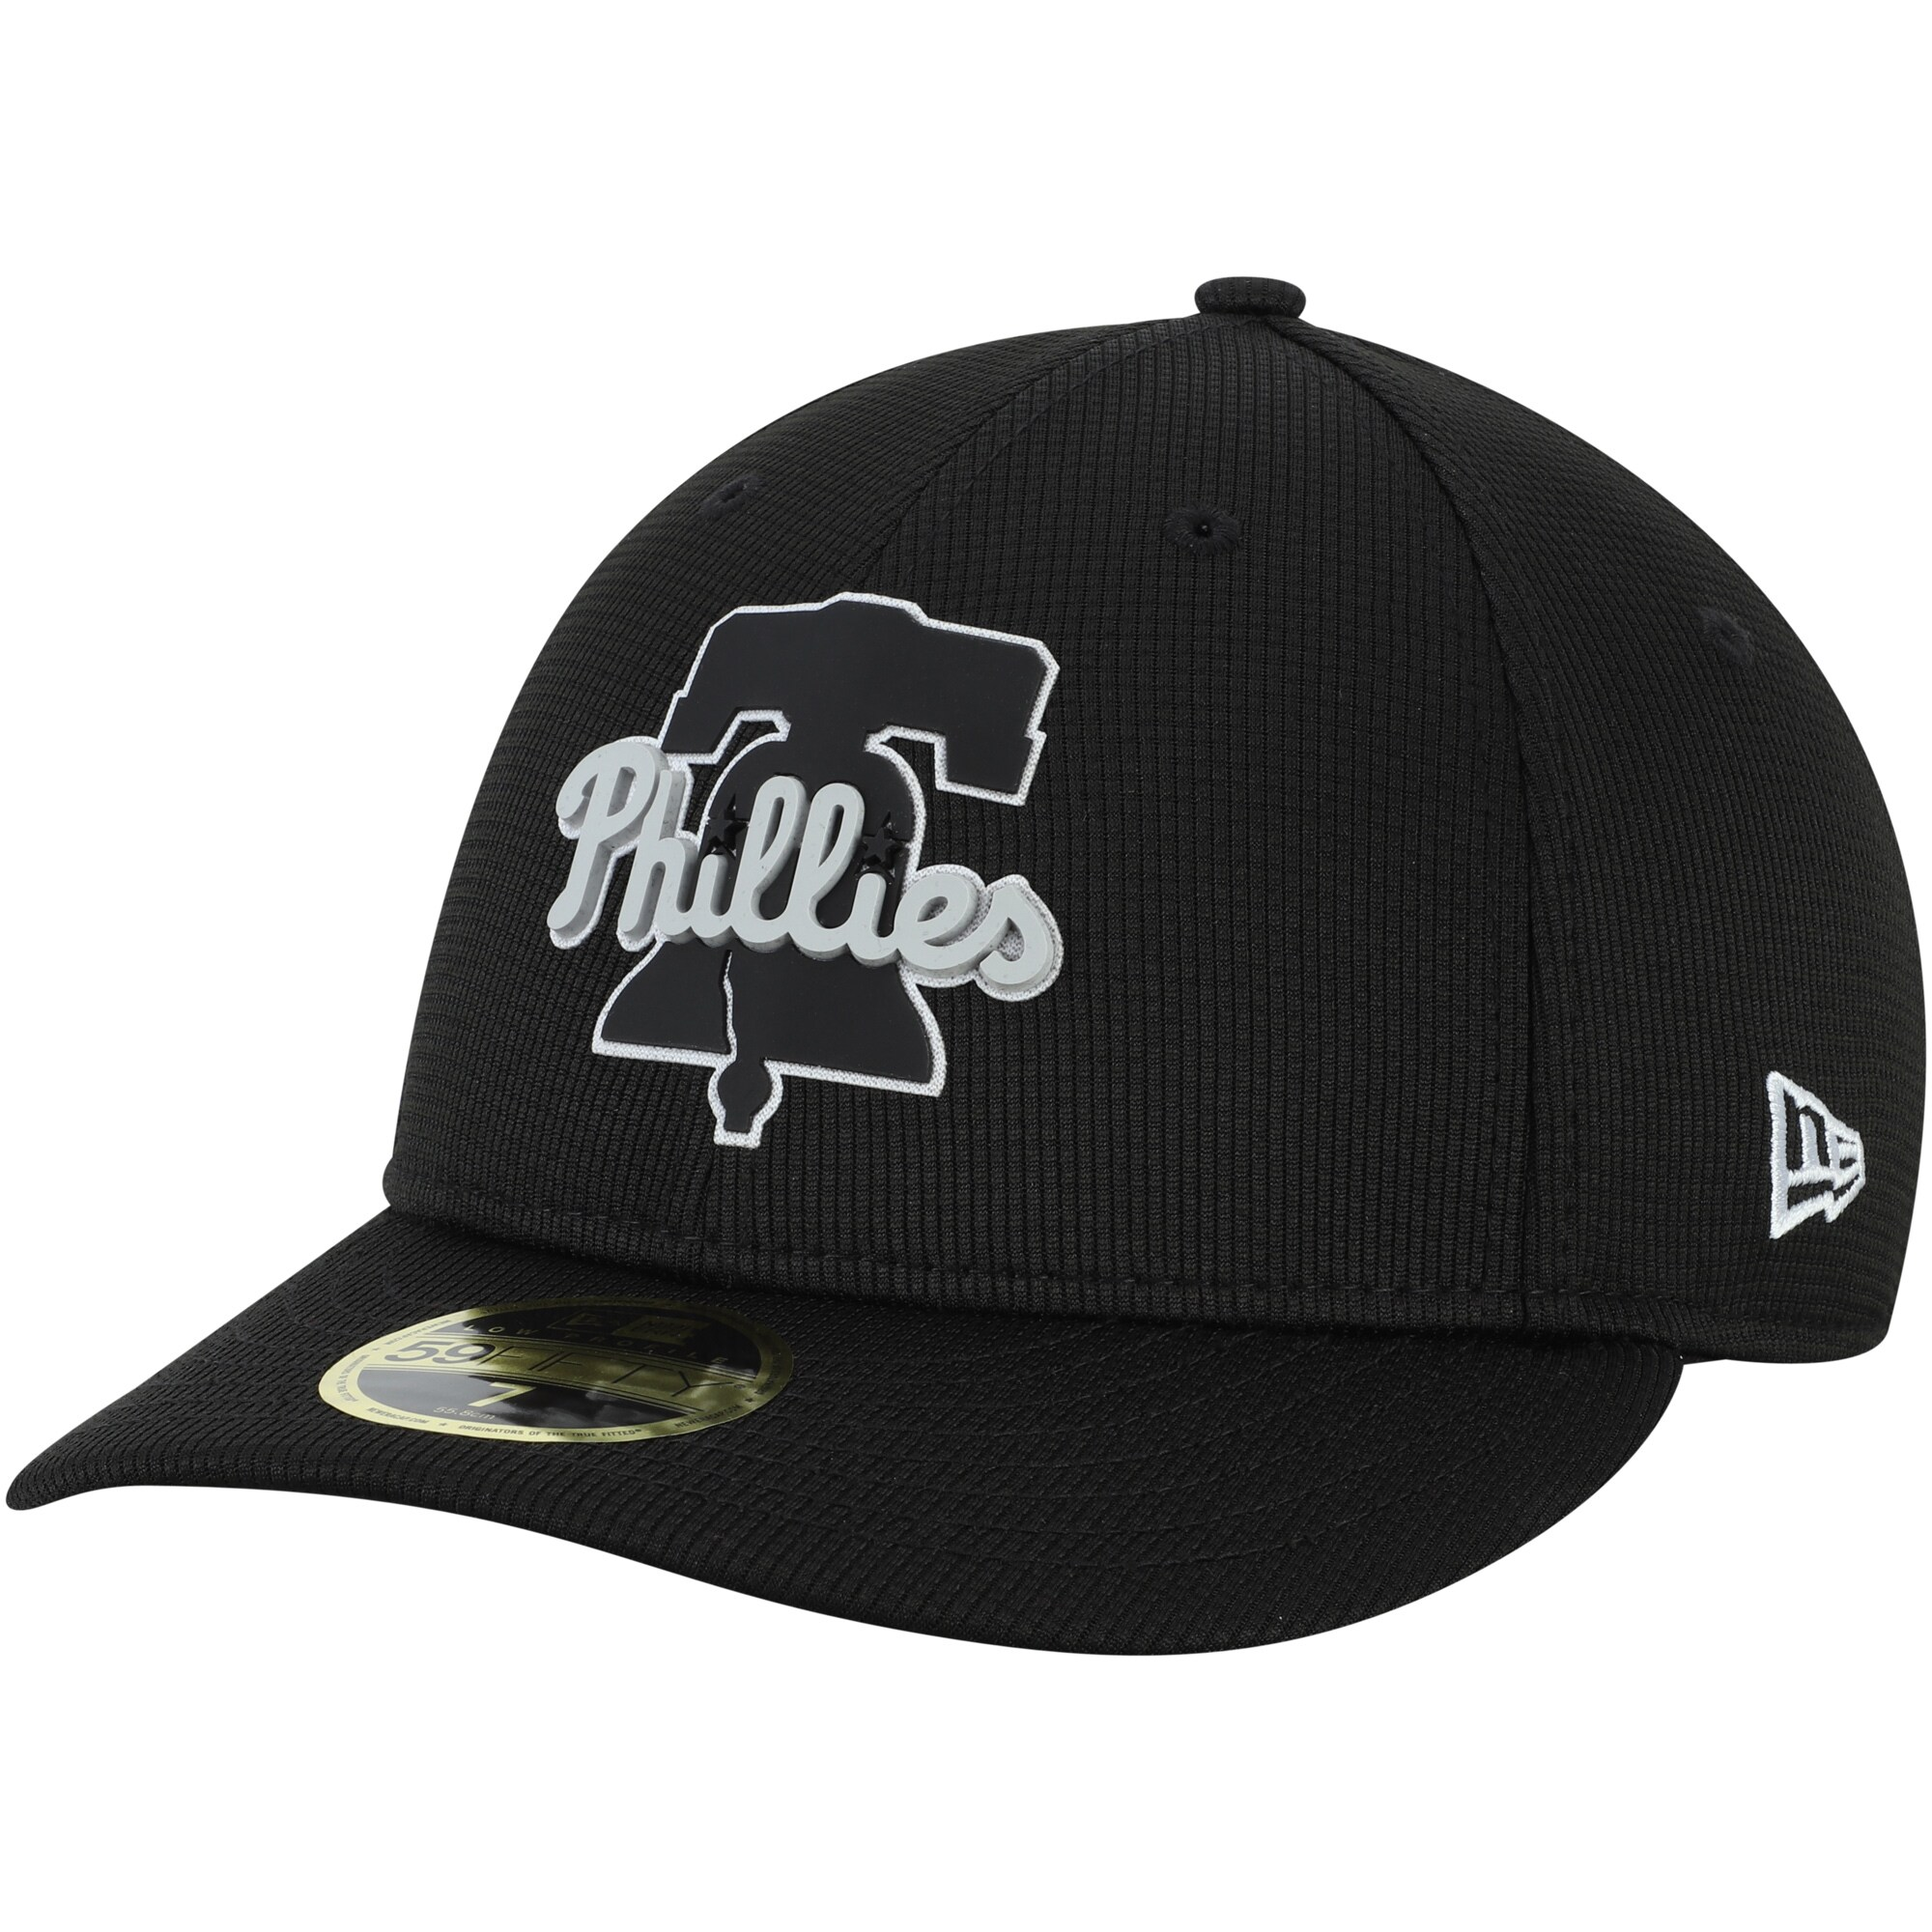 Philadelphia Phillies New Era Team Clubhouse Low Profile 59FIFTY Fitted Hat - Black